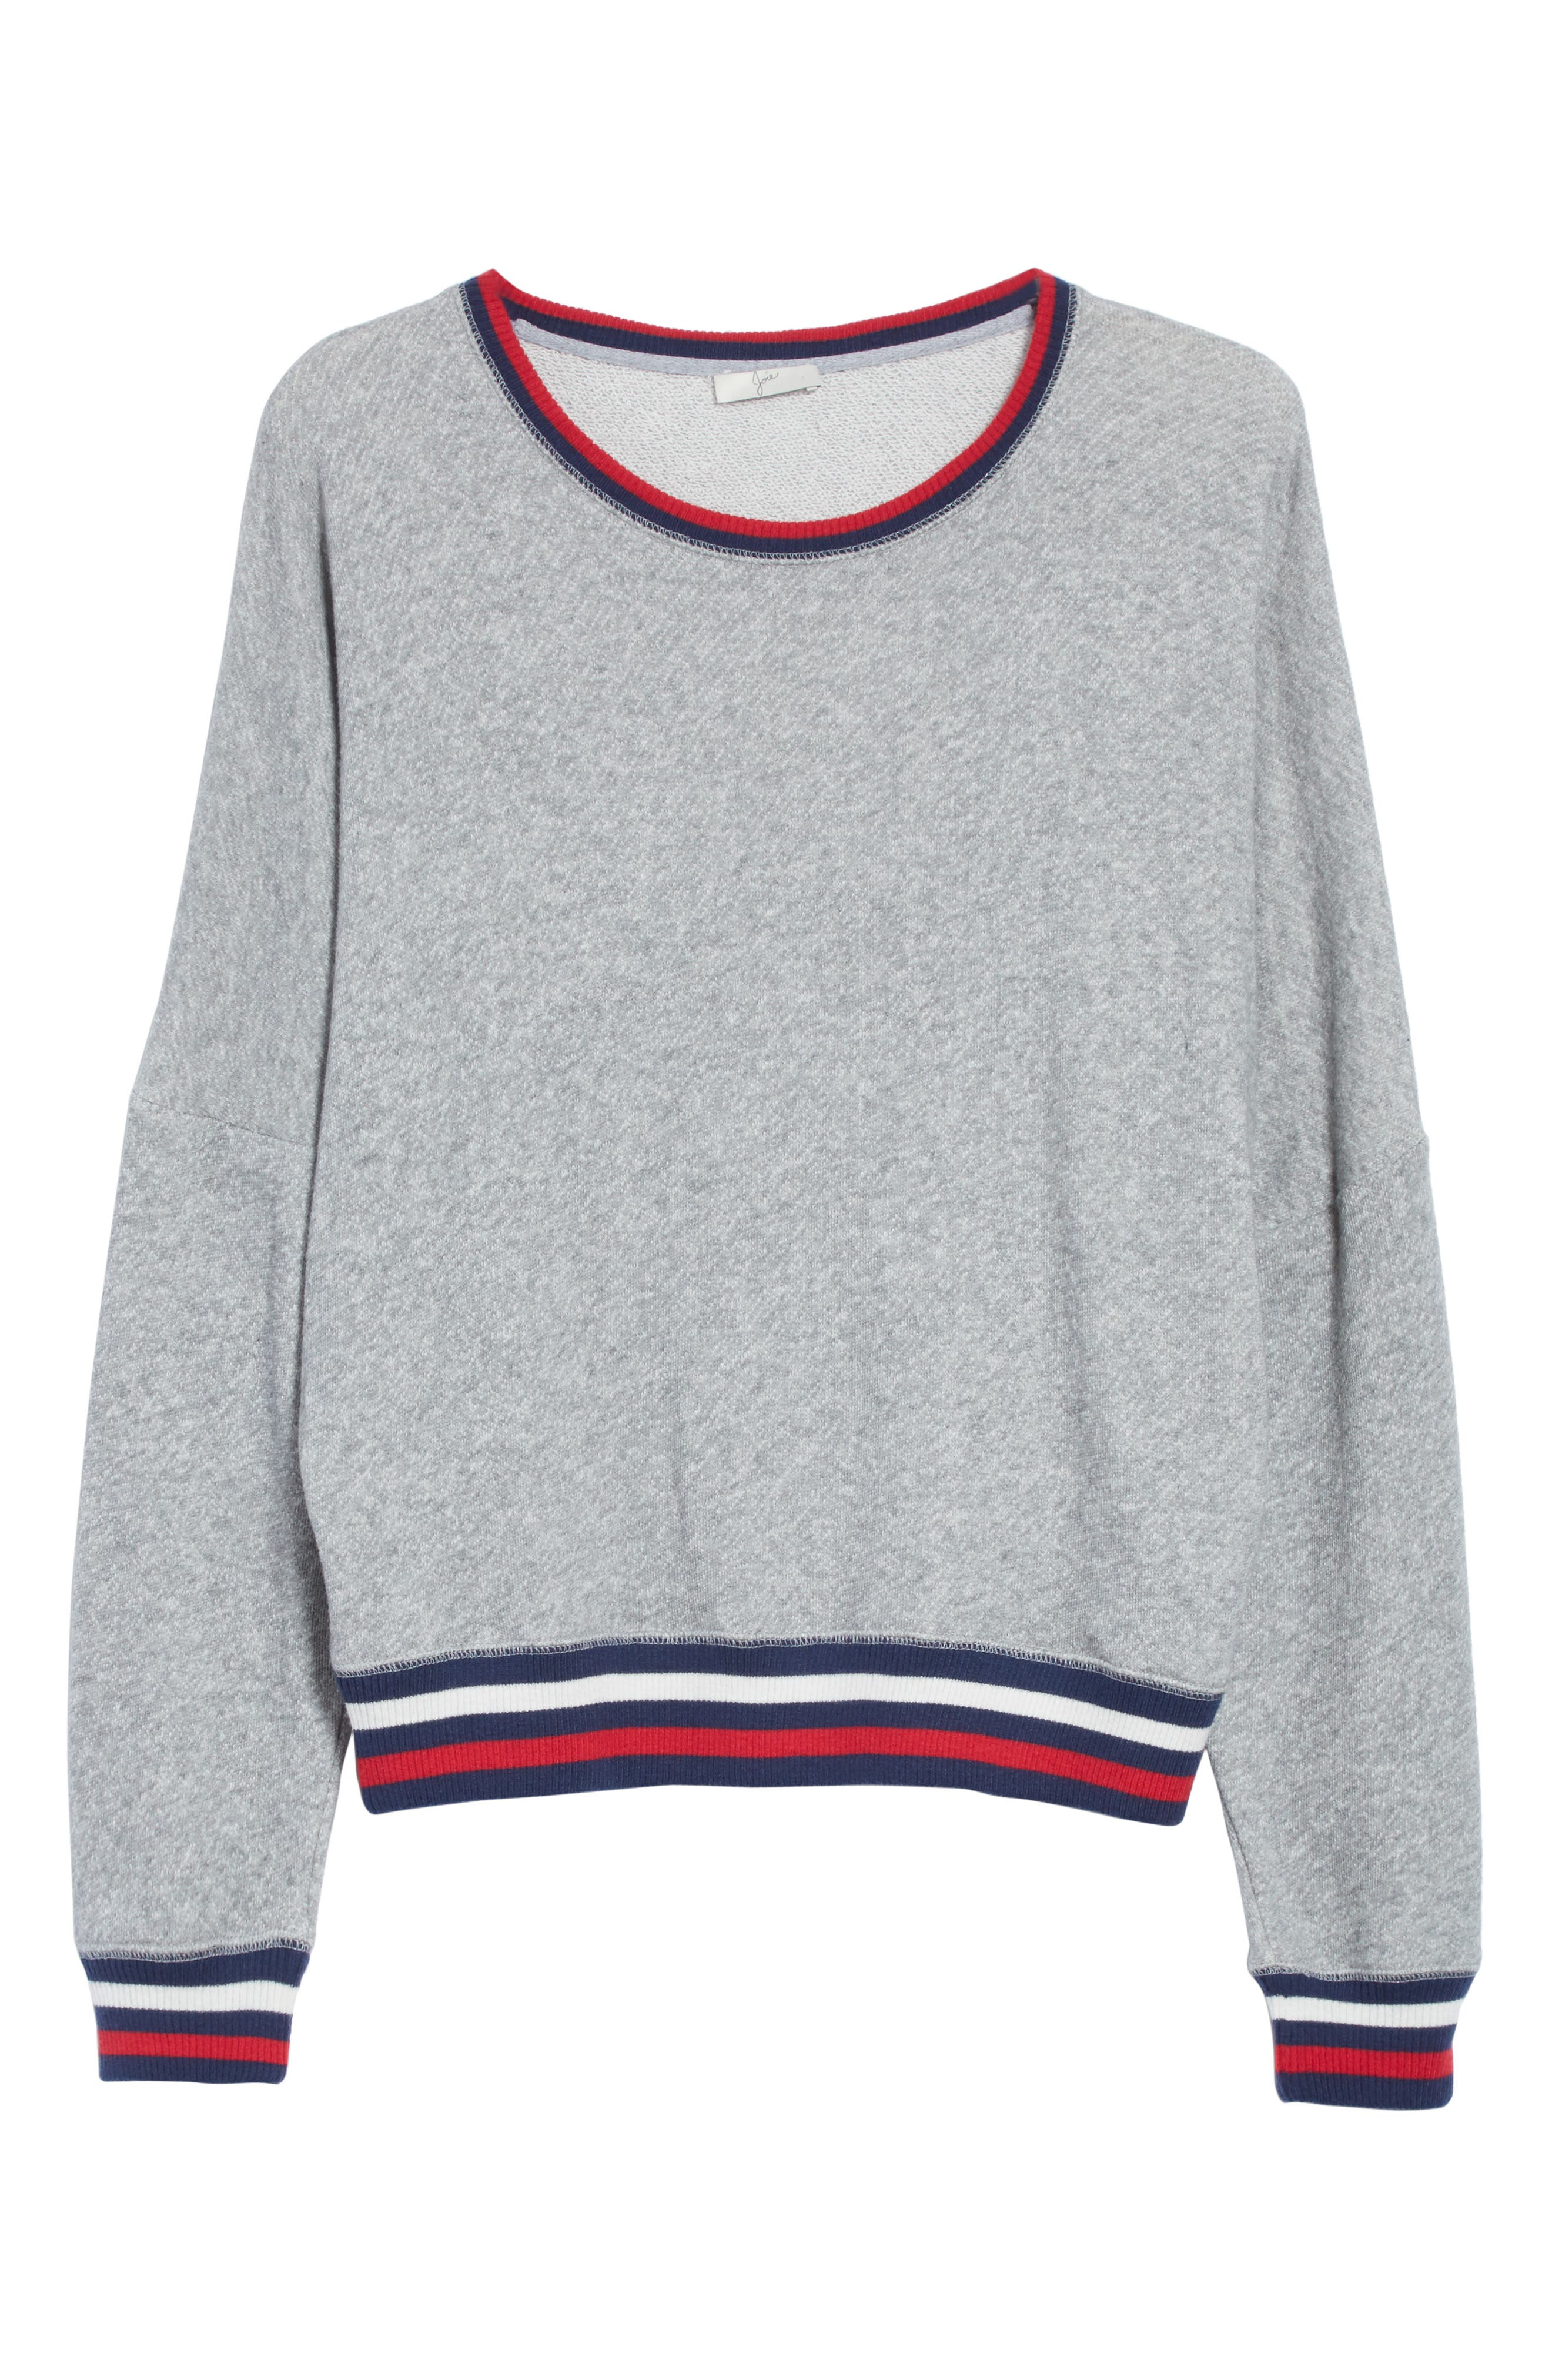 JOIE,                             Richardine B Sweatshirt,                             Alternate thumbnail 6, color,                             033